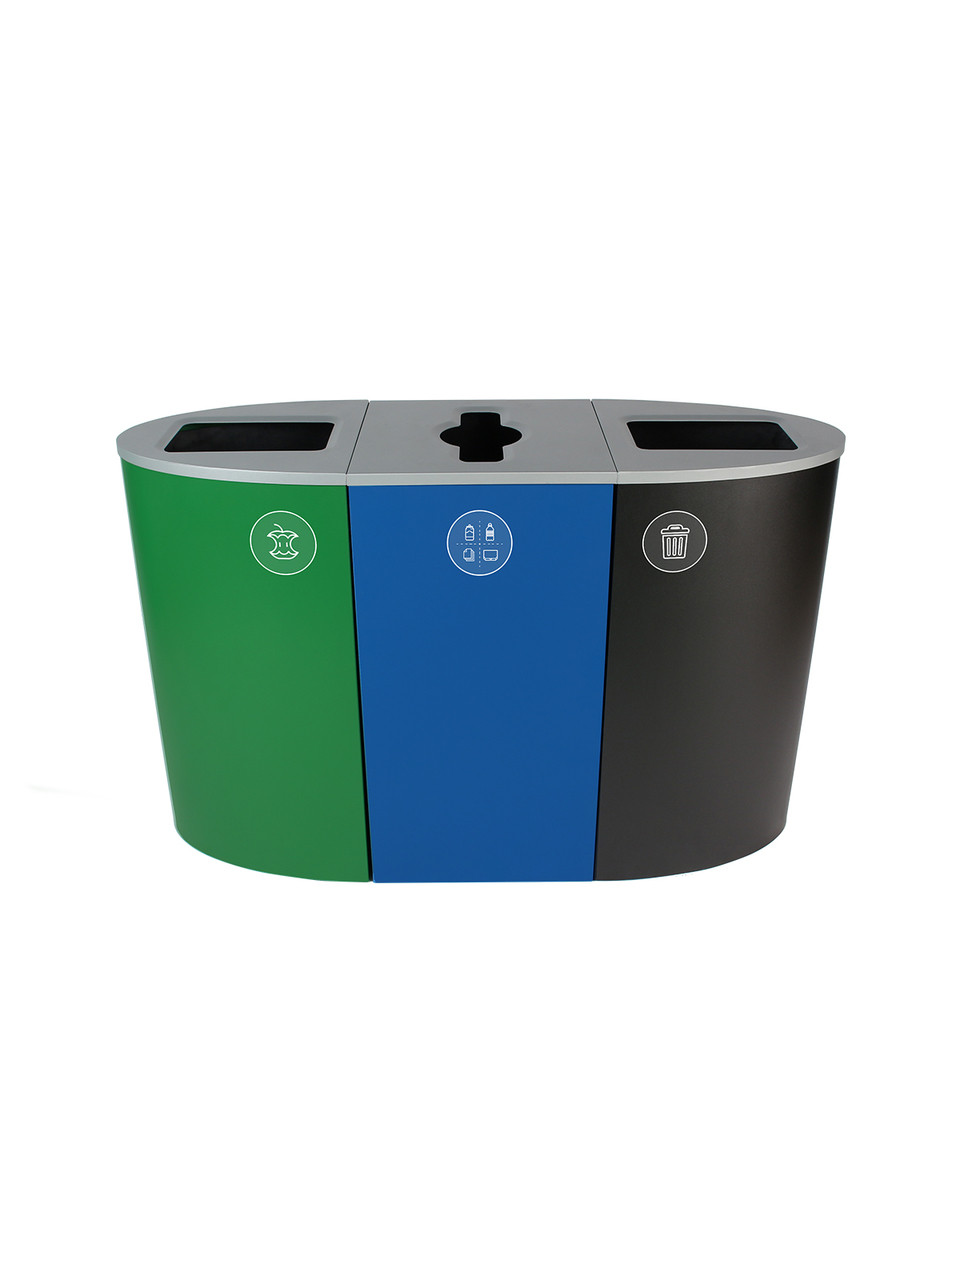 68 Gallon Spectrum Triple Recycling Station Green/Blue/Black 8107104-424